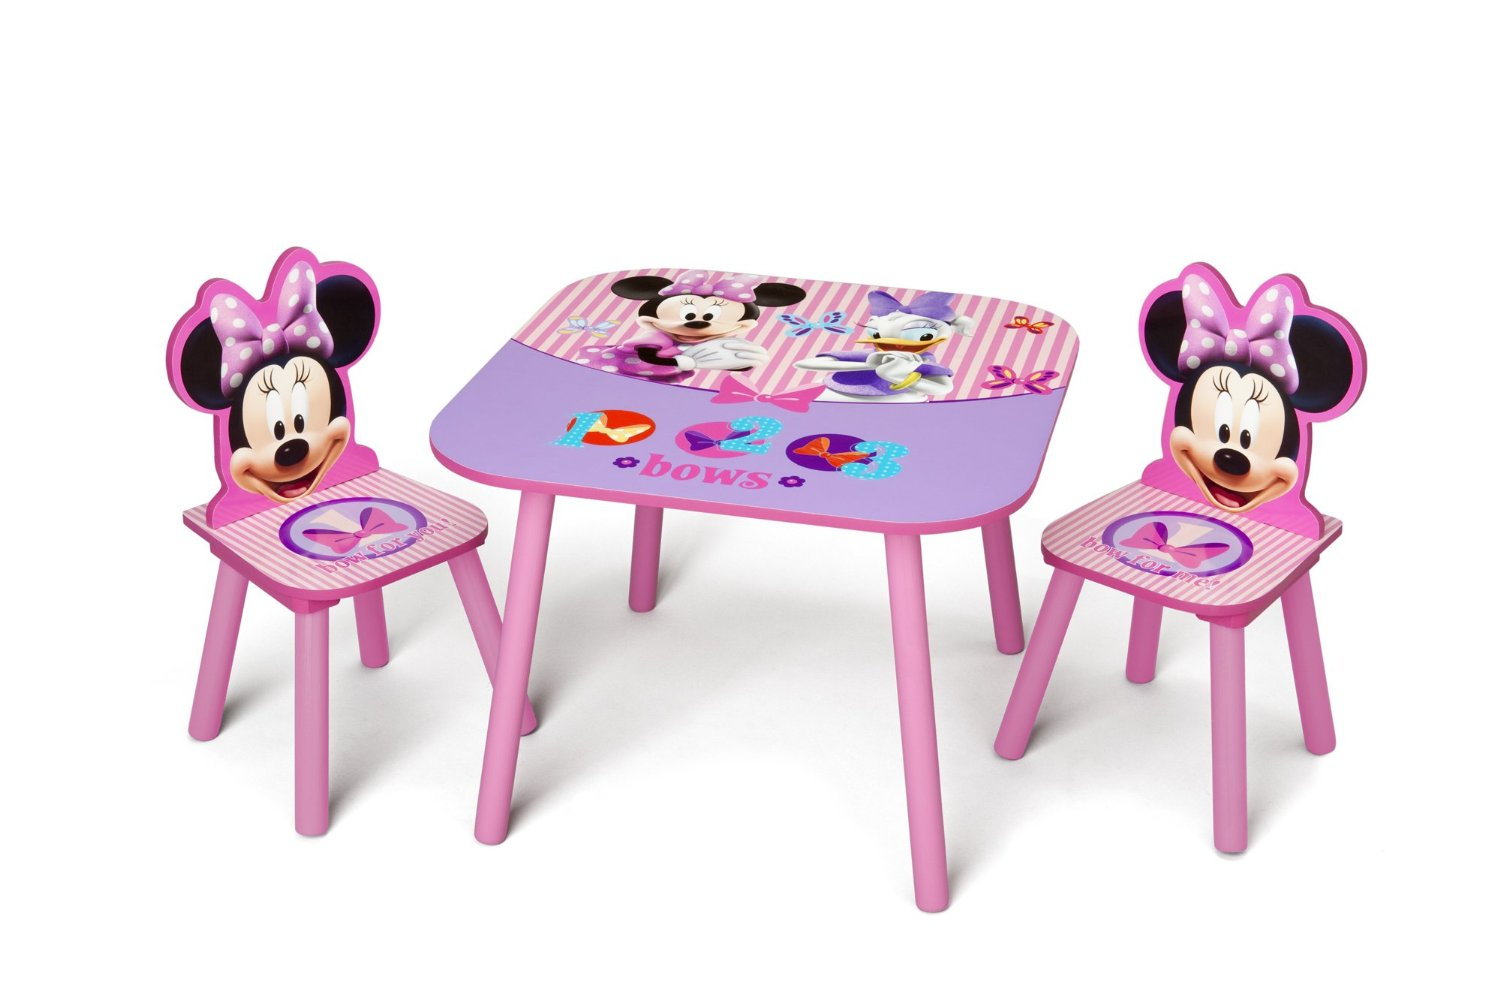 Delta Children Table u0026 Chair ...  sc 1 st  Party Supply Factory & Delta Children Table u0026 Chair Set Disney Minnie Mouse u2013 Party Supply ...